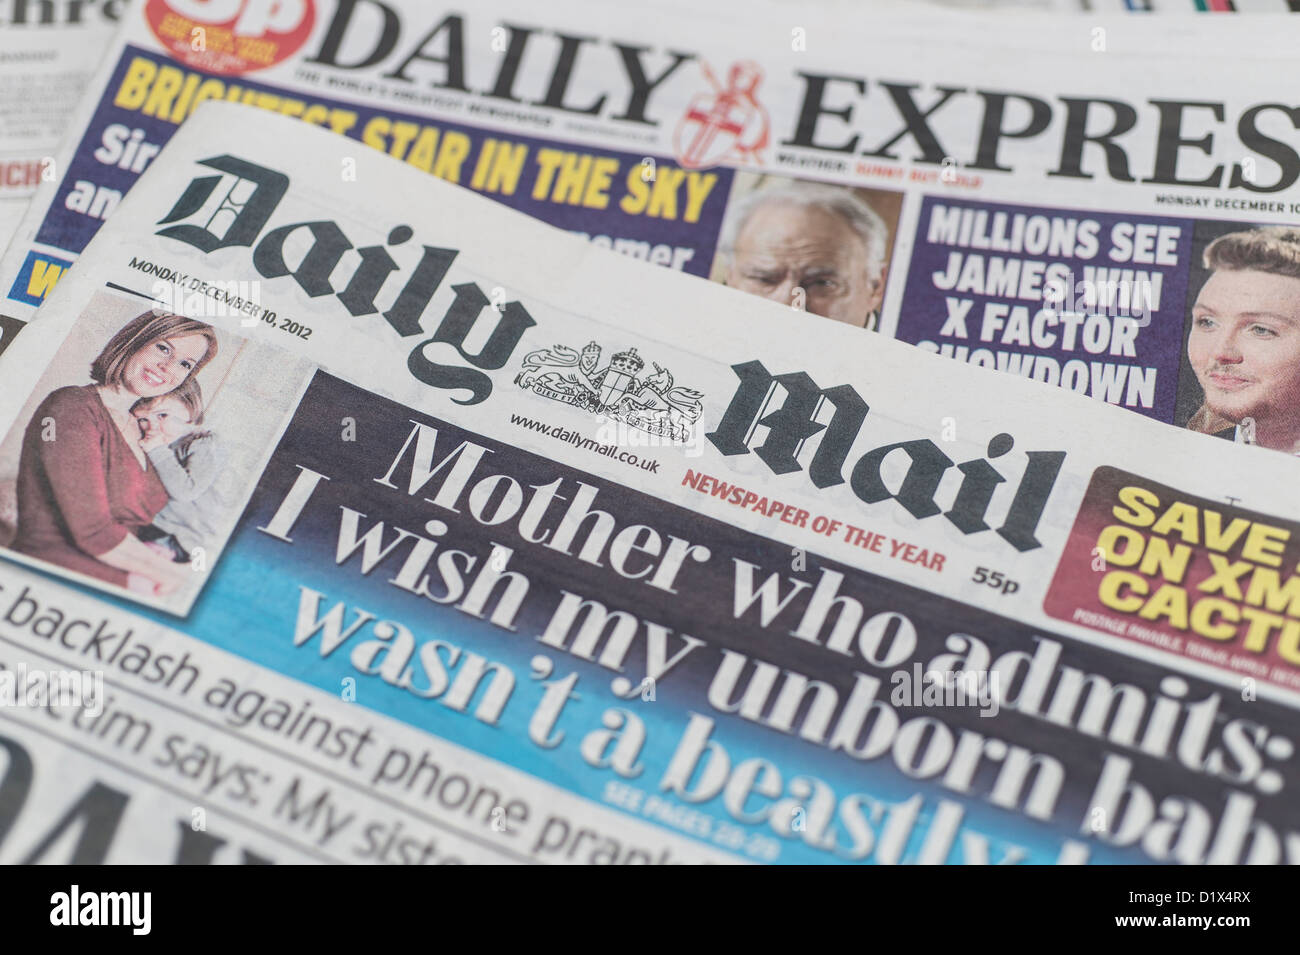 Gally Mail: The Front Pages And Mastheads Of UK British English Daily